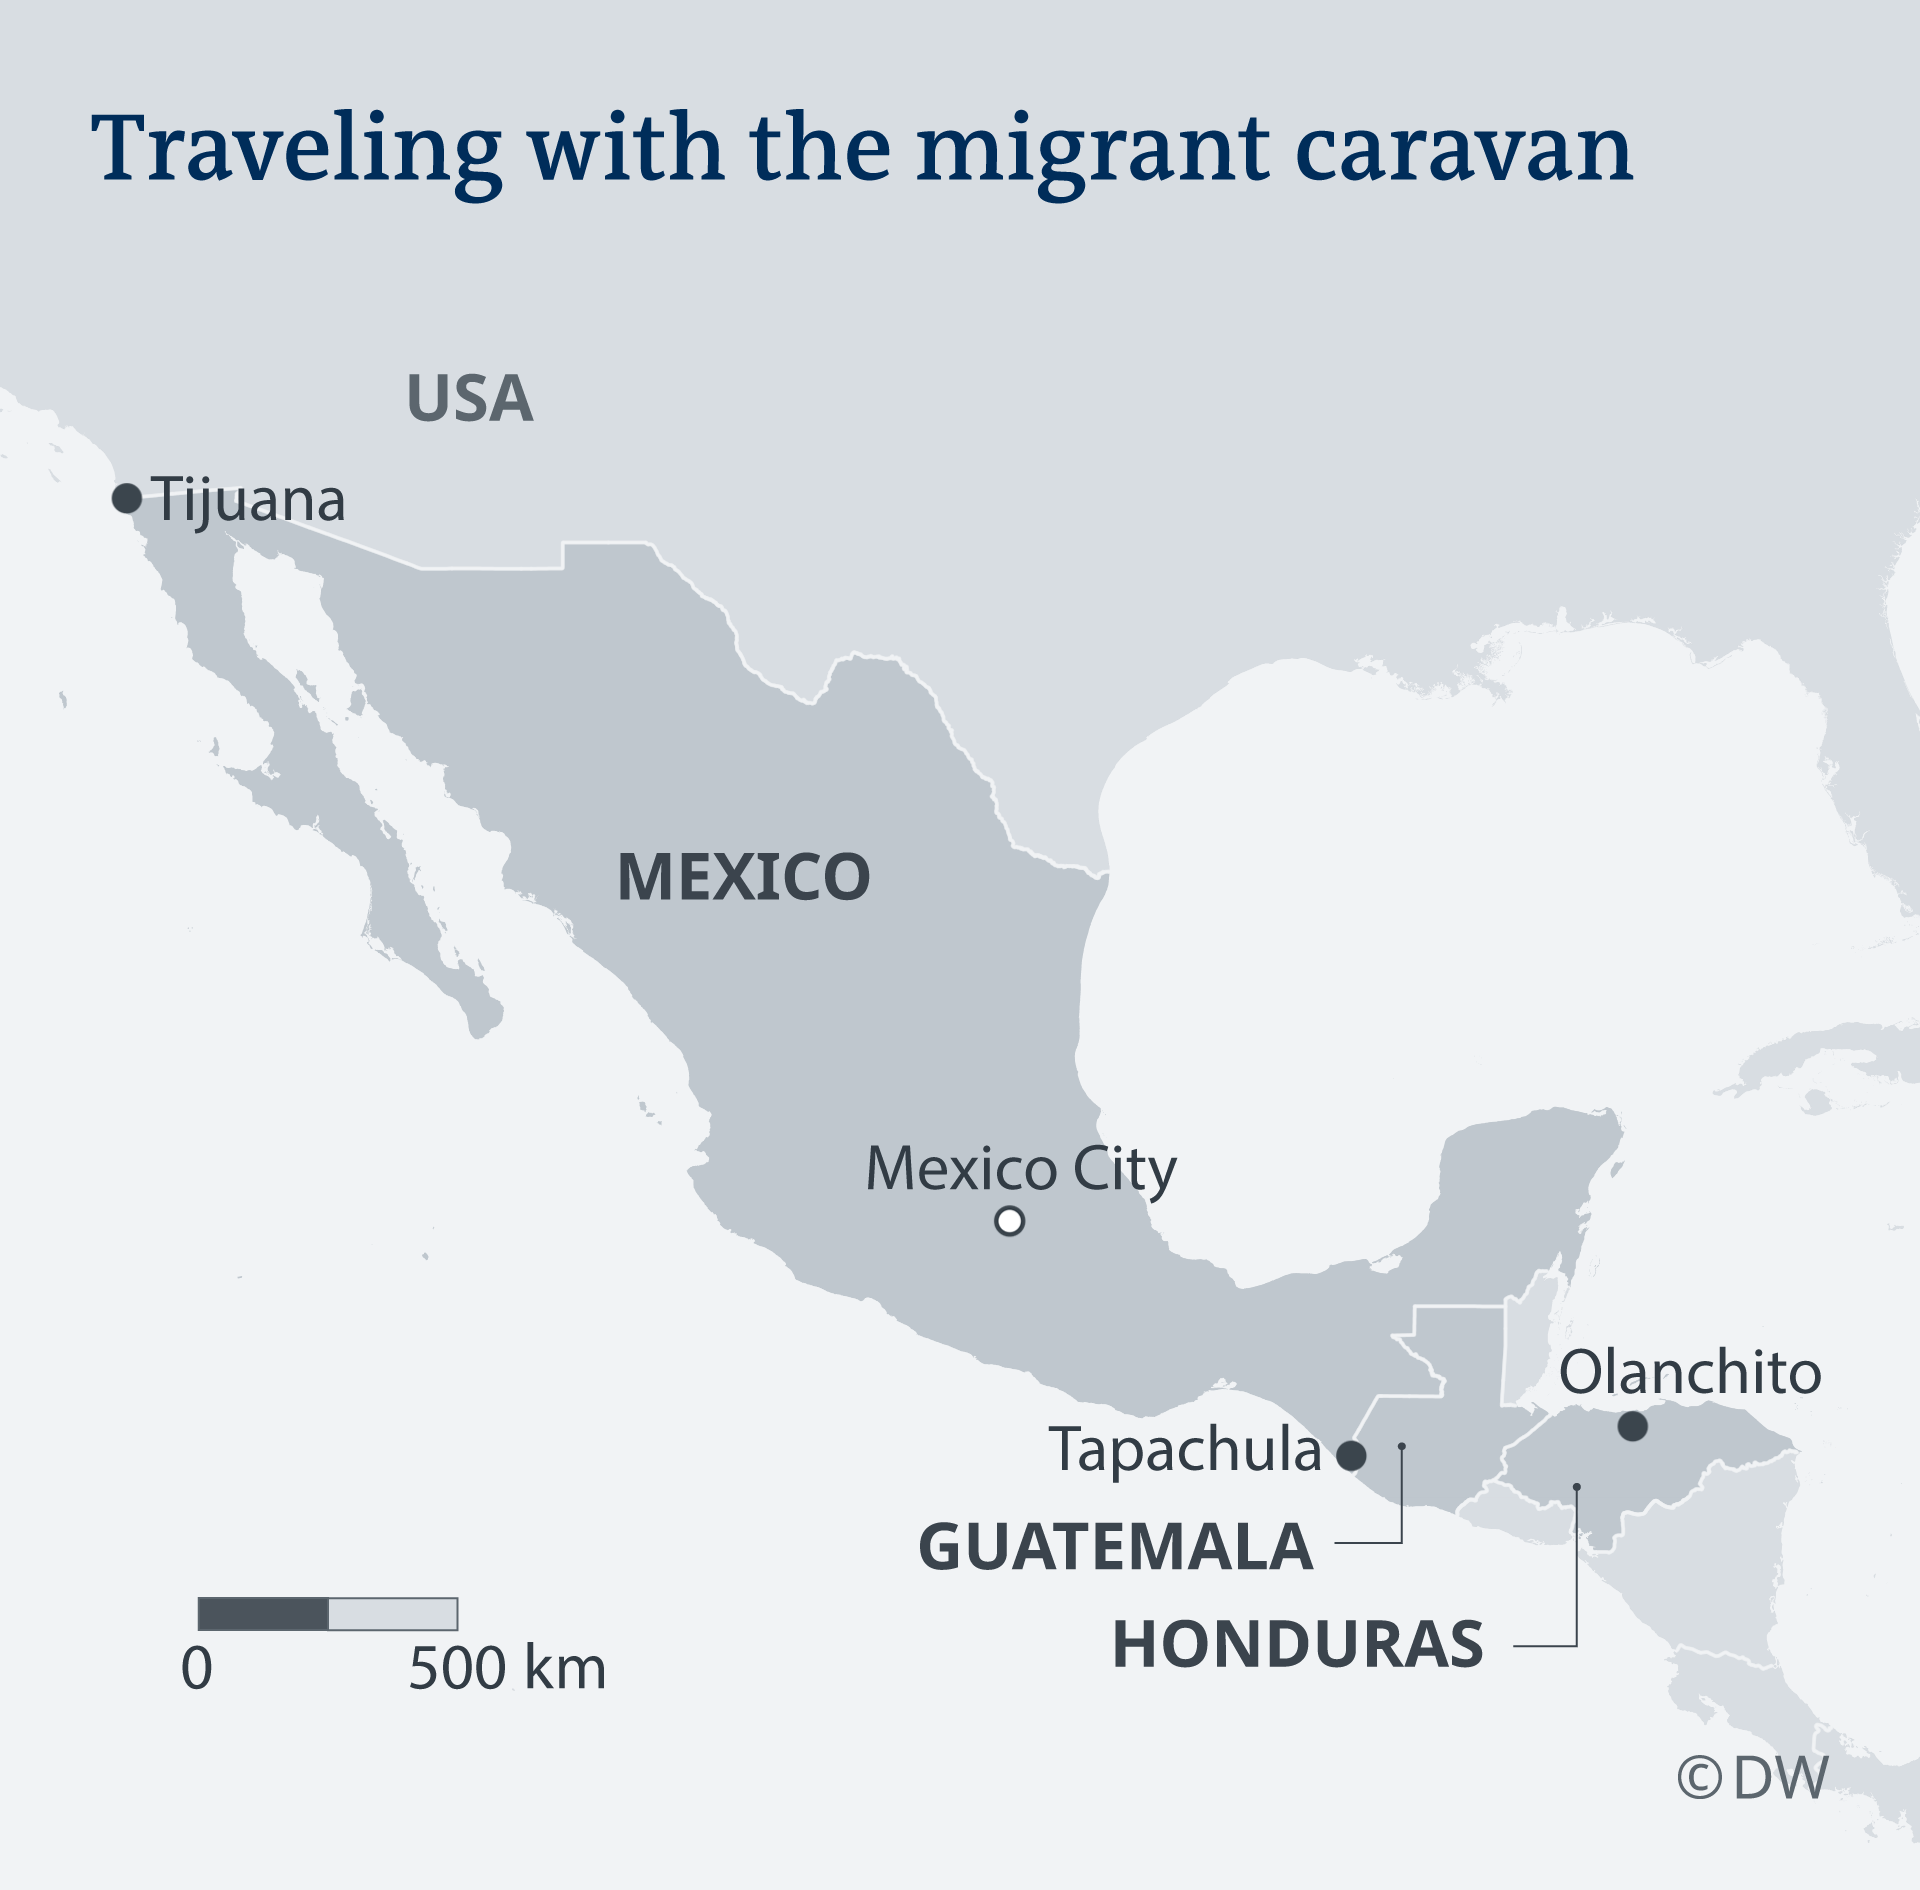 Migrant caravan was my only chance′ for a better life ...